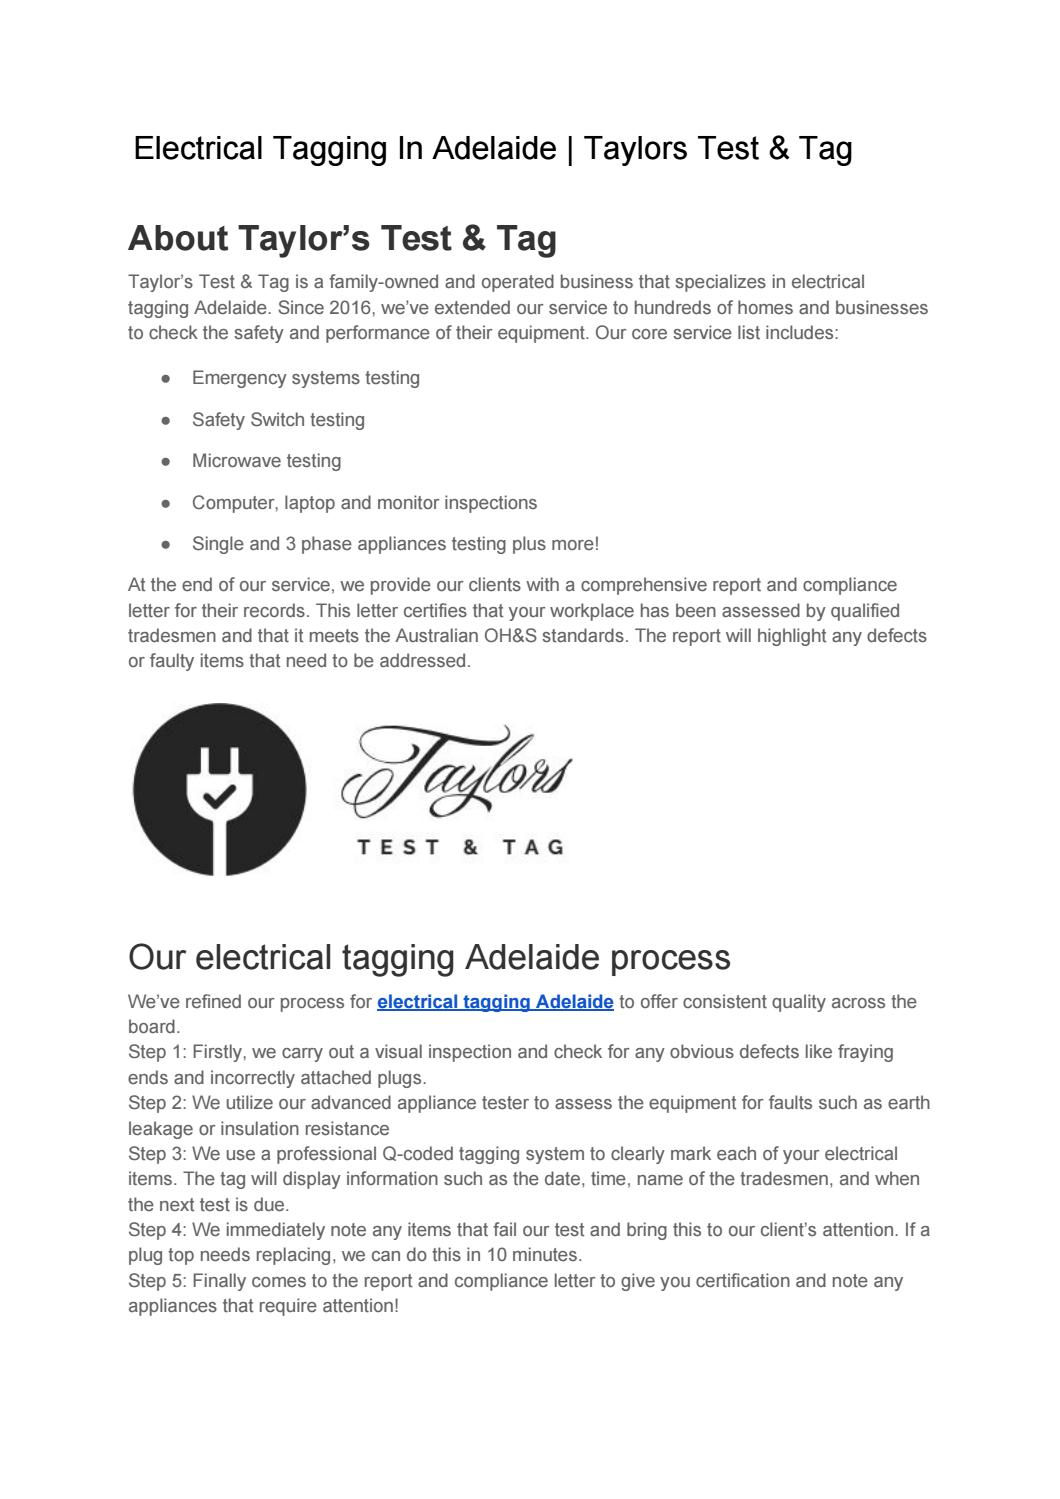 Electrical Tagging In Adelaide Taylors Test Tag By Taylors Test Tag Issuu